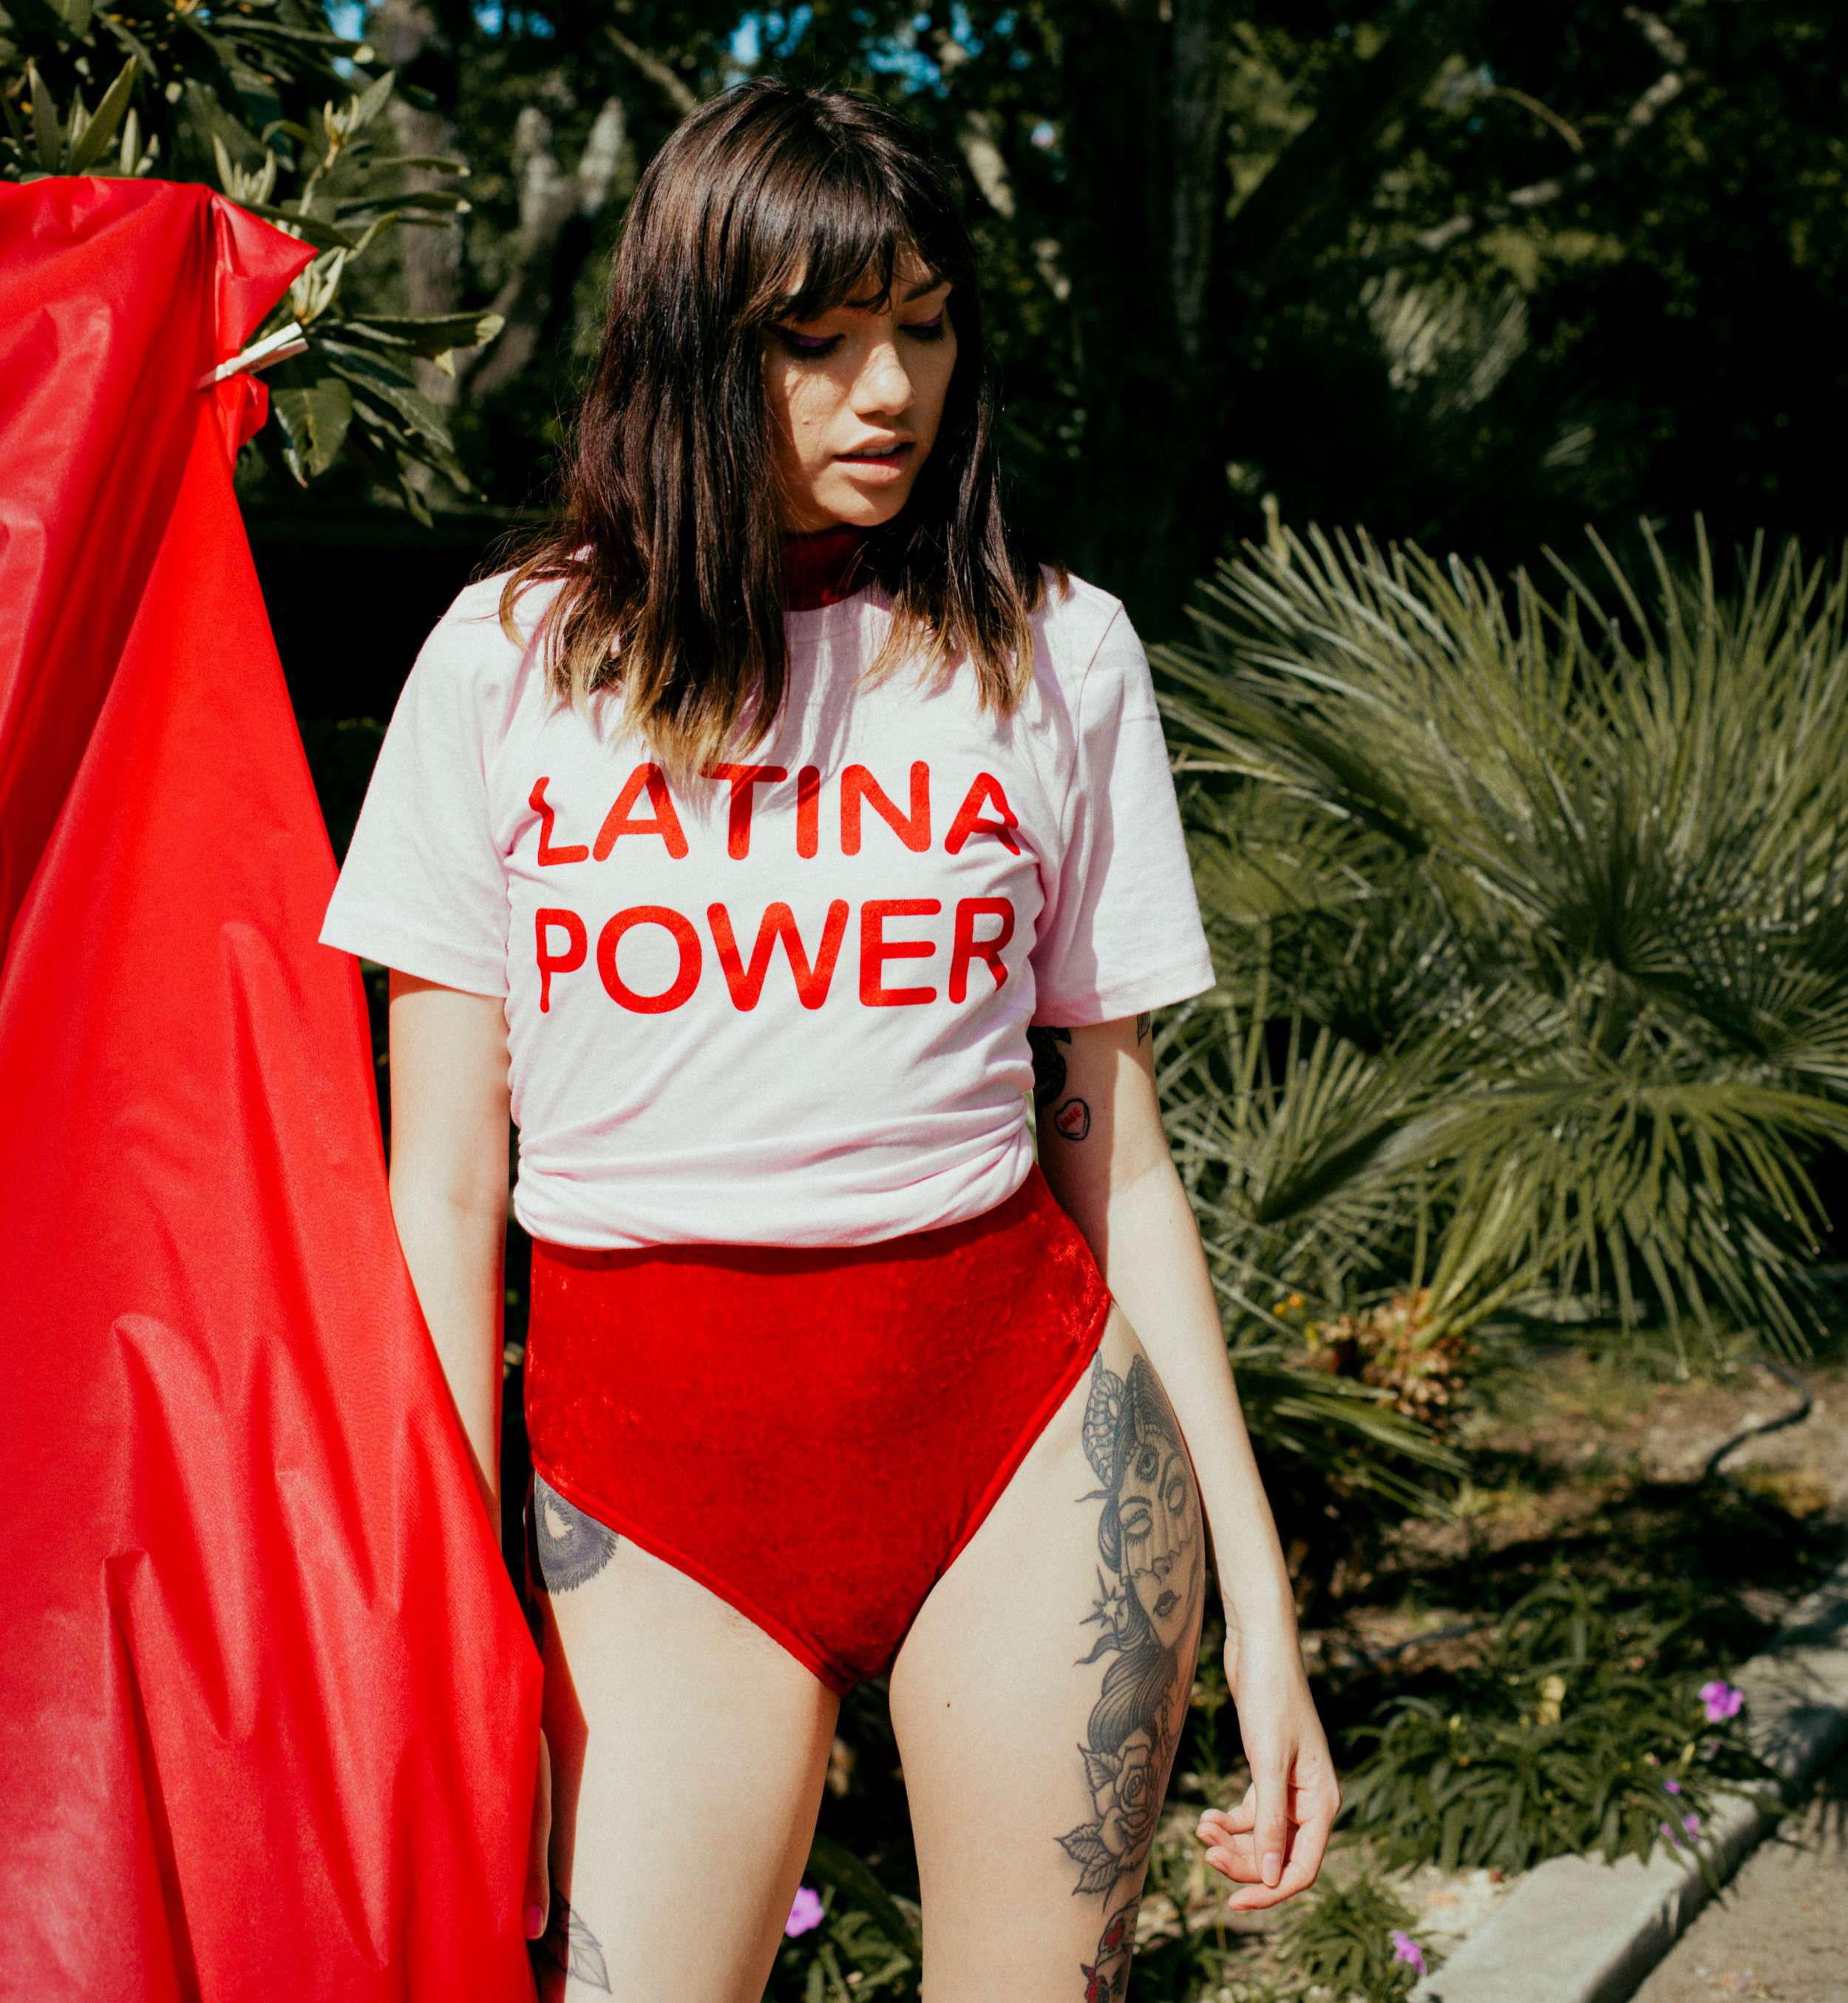 Latina Power-SA (1).jpg